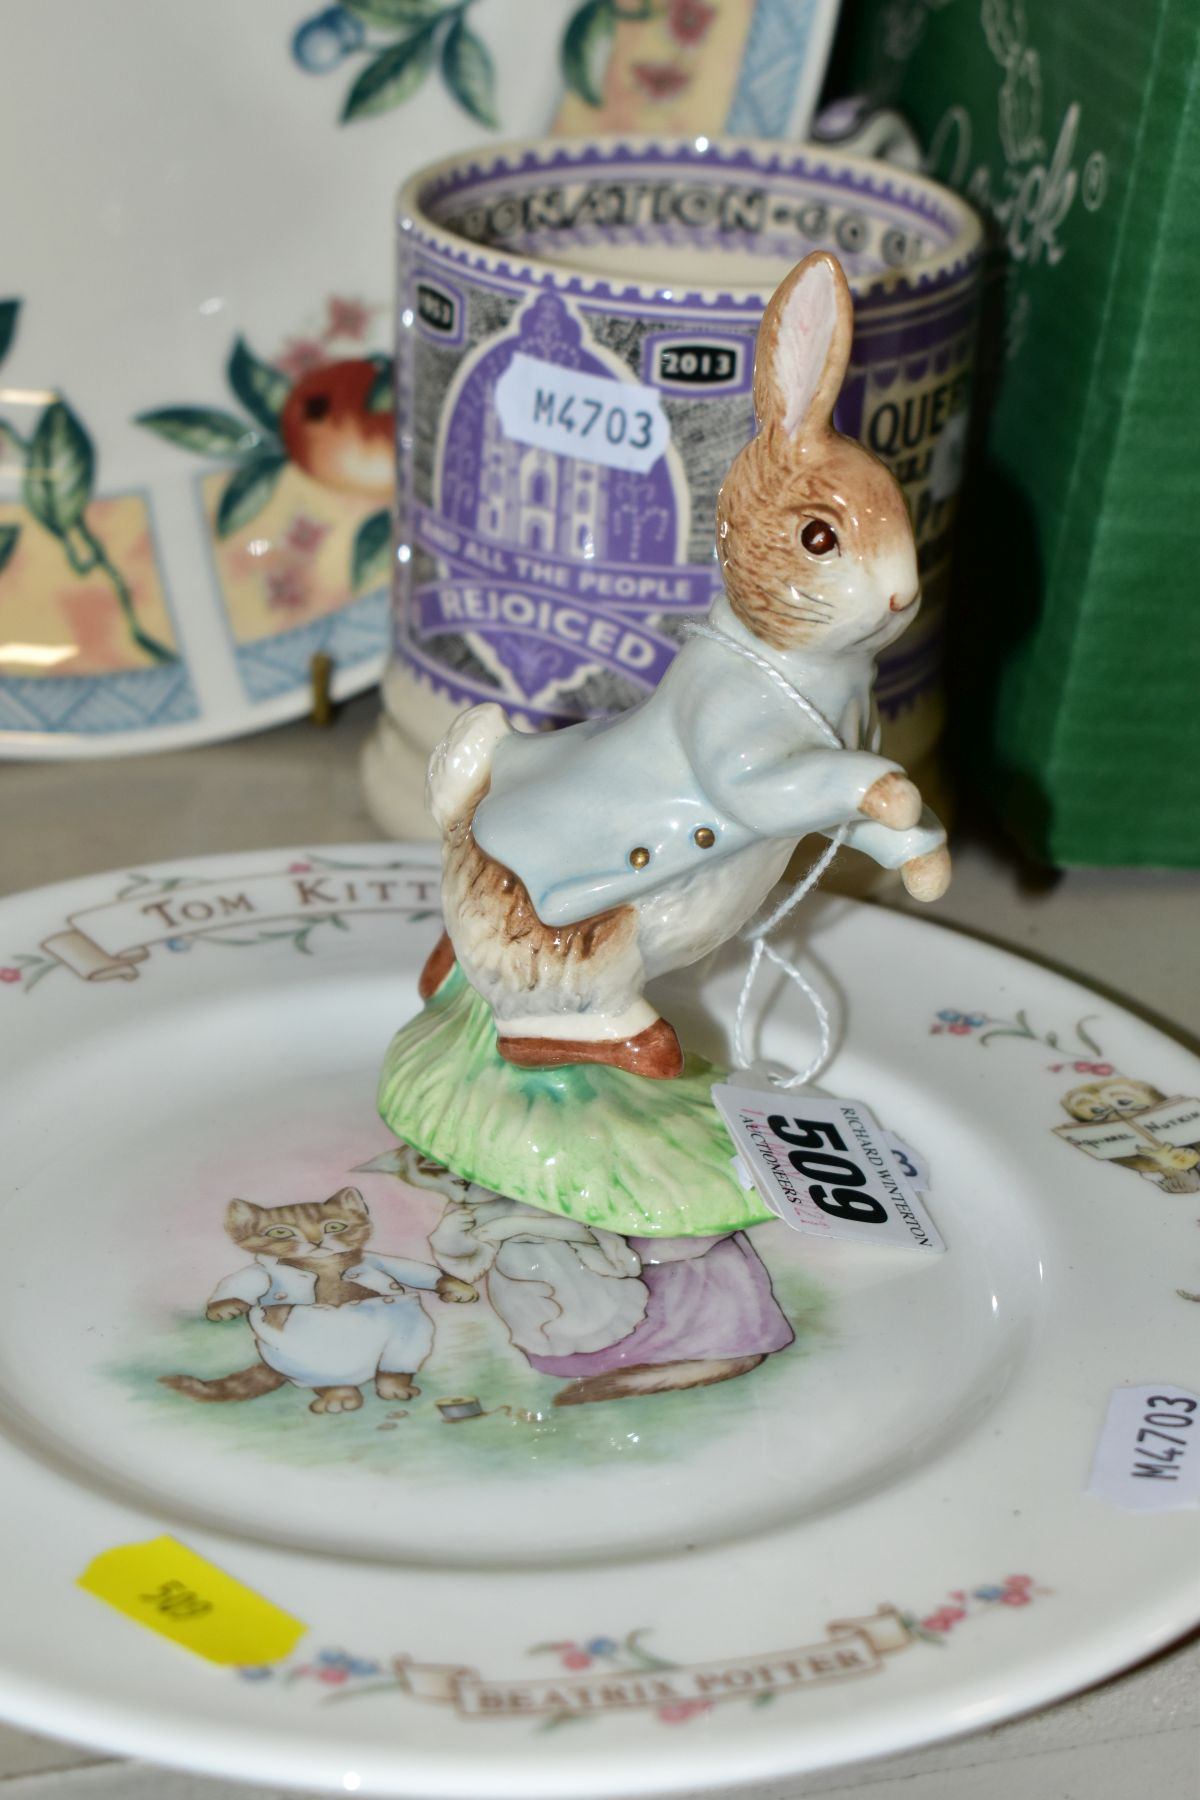 DECORATIVE CERAMICS ETC, to include a boxed Beswick Peter Rabbit, Royal Albert 'Tom Kitten' plate, - Image 4 of 11